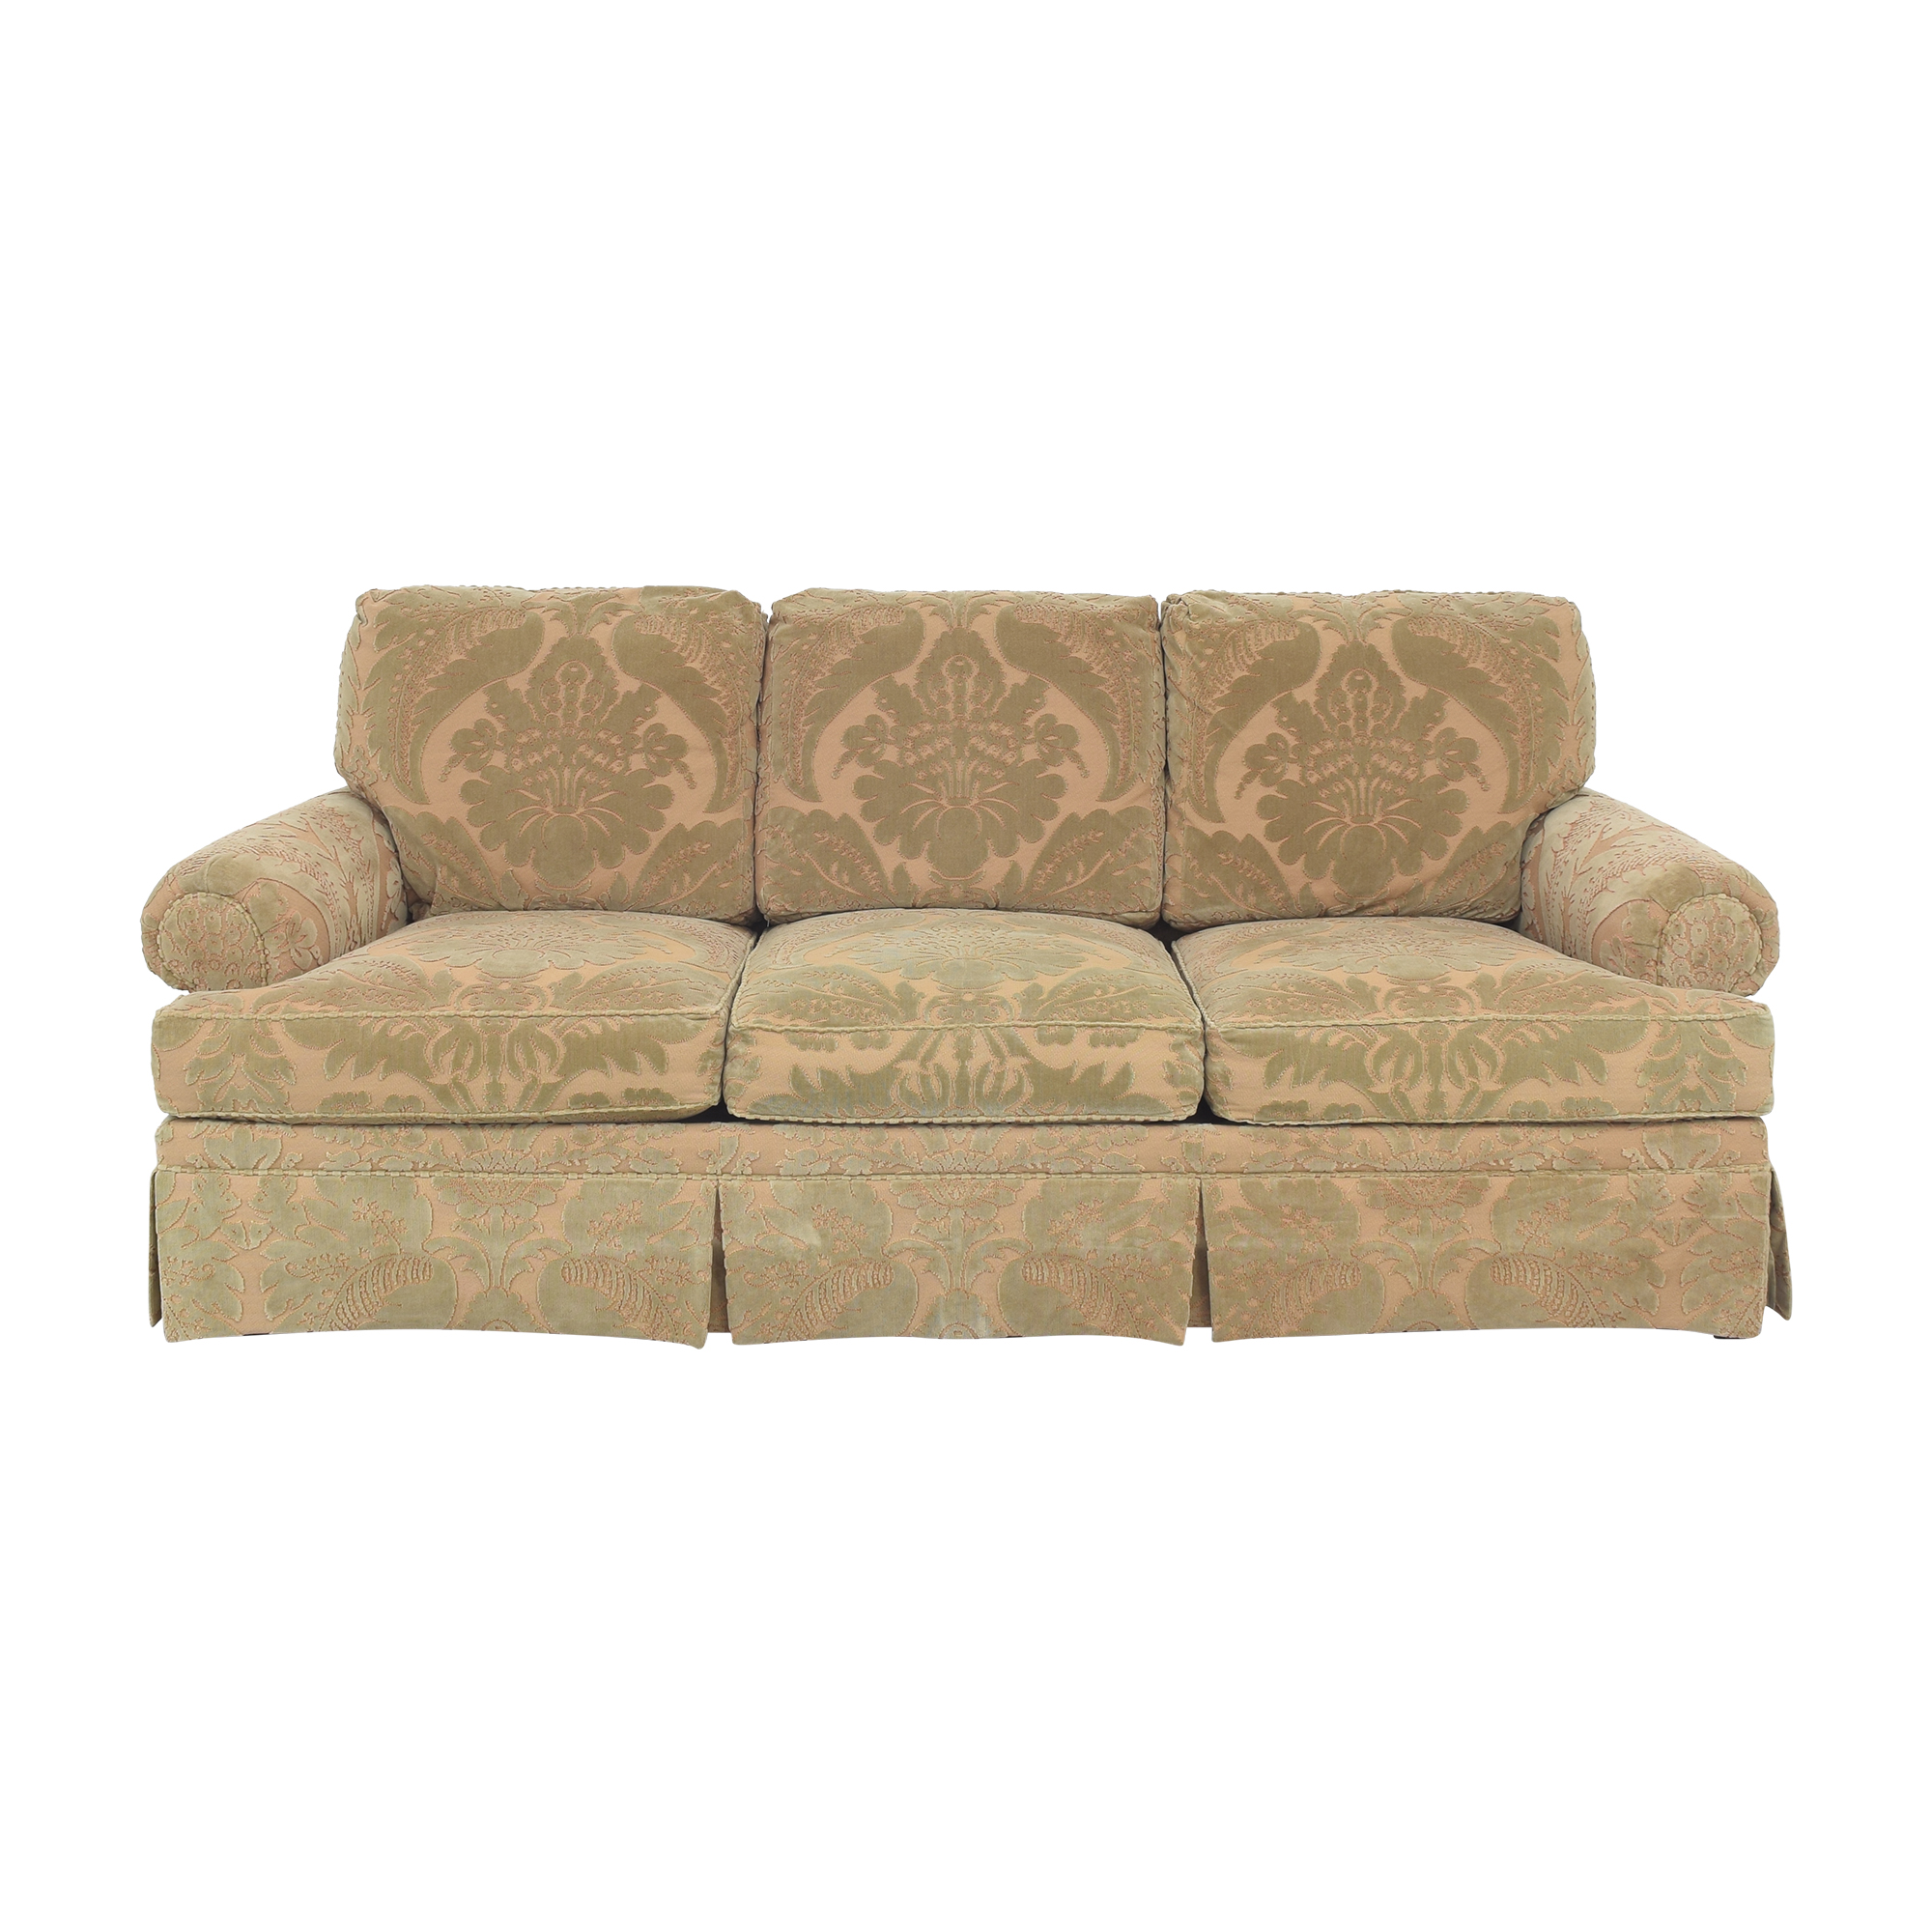 Hickory Chair Hickory Chair Sovereign Collection Devon Sofa green and beige